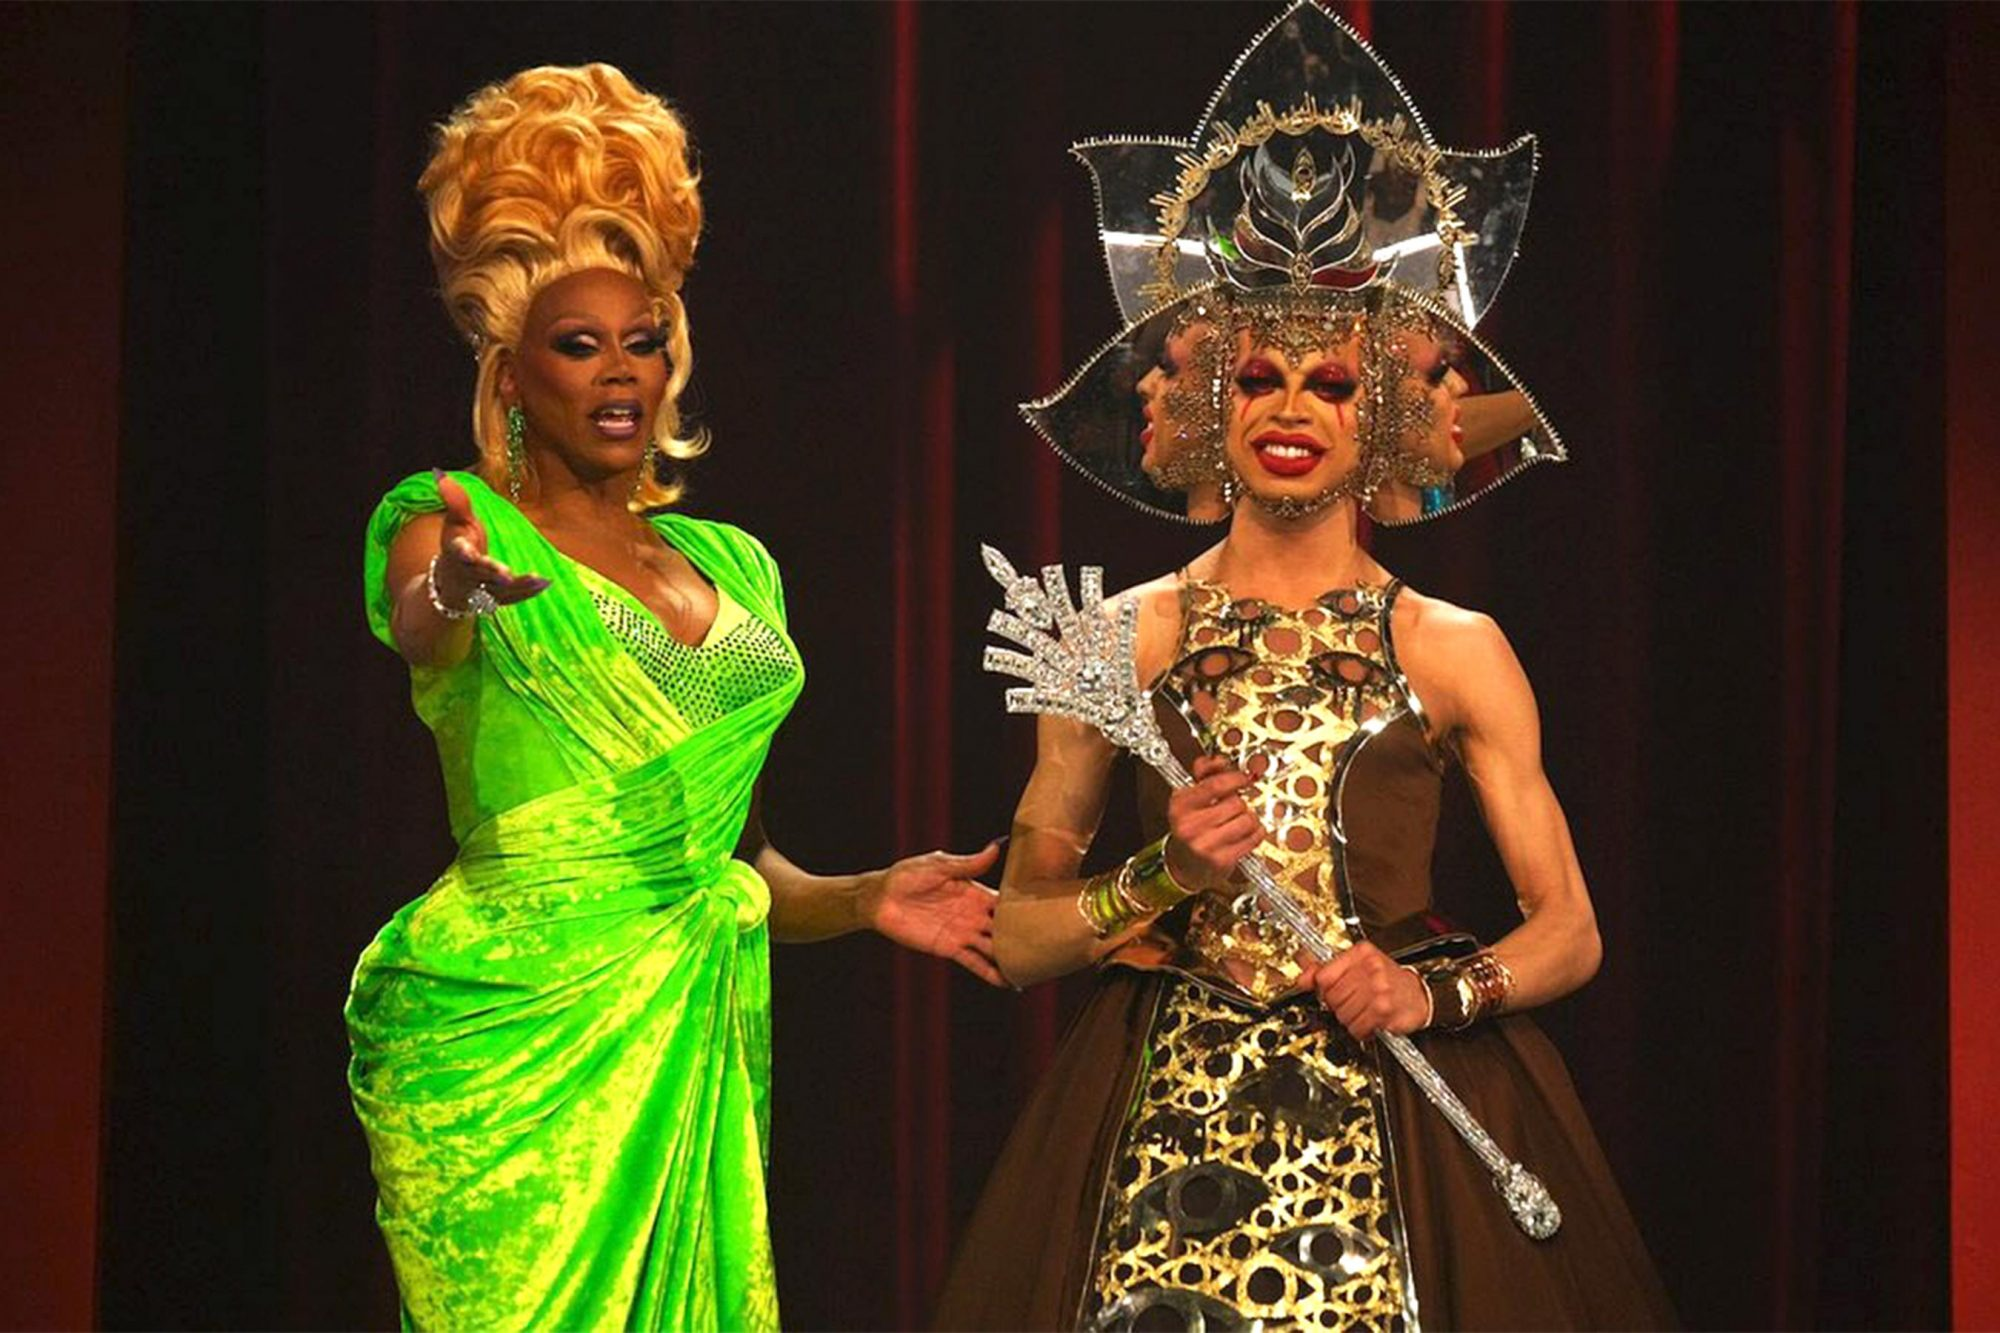 RuPaul's Drag Race Season 11 finale RuPaul and season 11 winner, Yvie Oddly